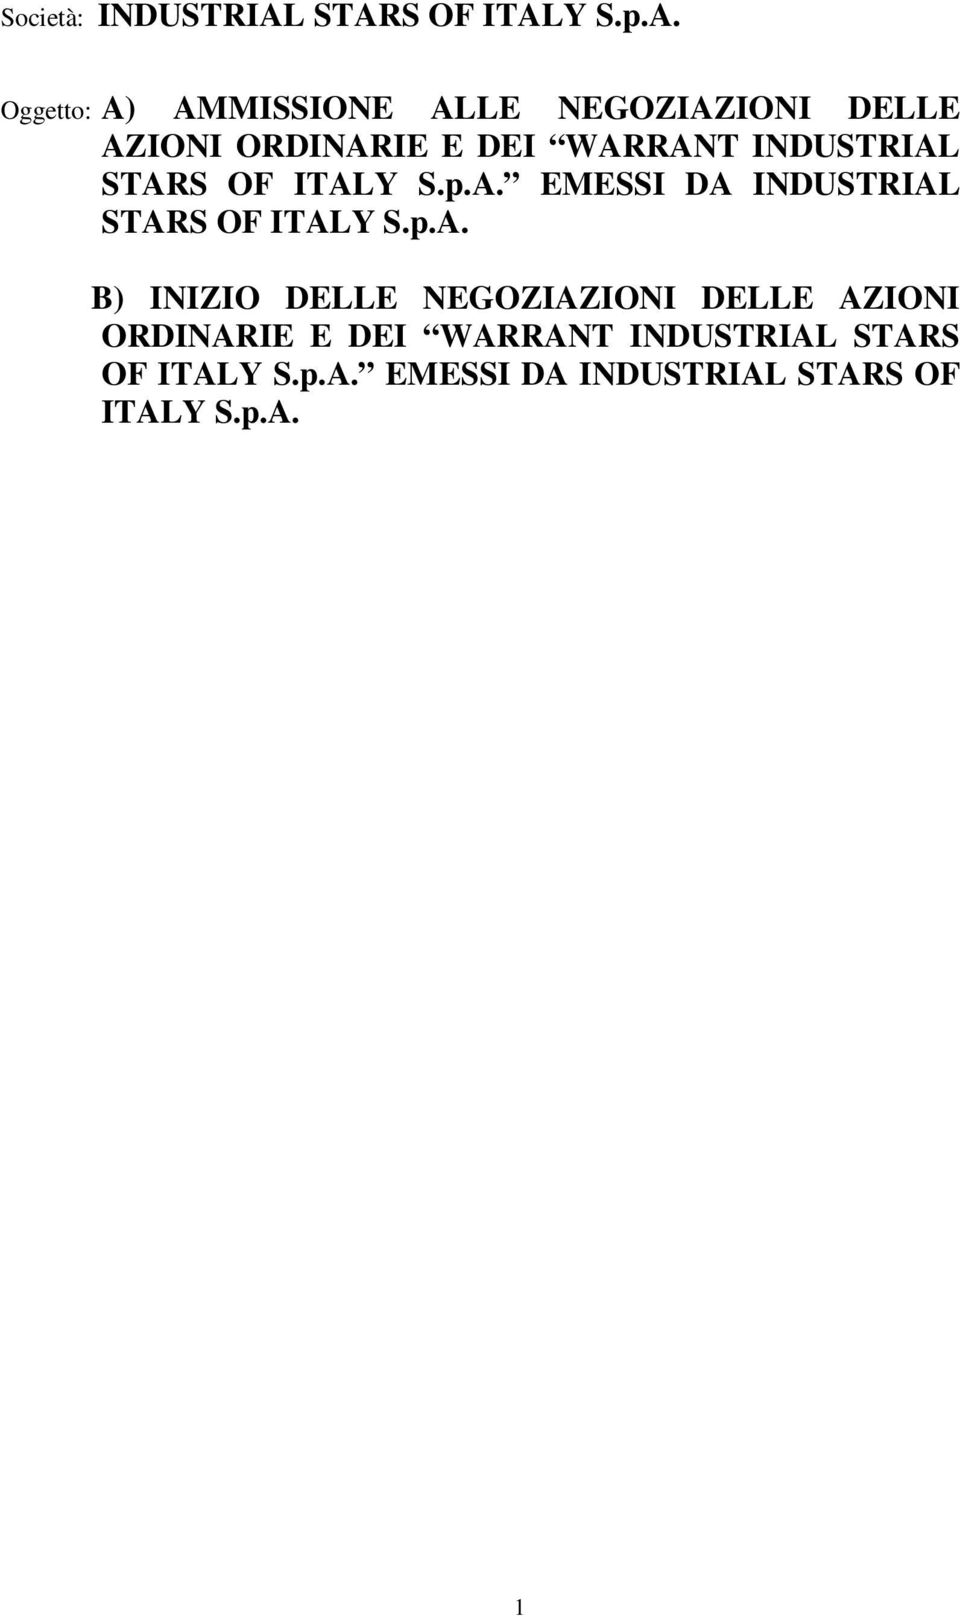 ORDINARIE E DEI WARRANT INDUSTRIAL STARS OF ITALY S.p.A. EMESSI DA INDUSTRIAL STARS OF ITALY S.